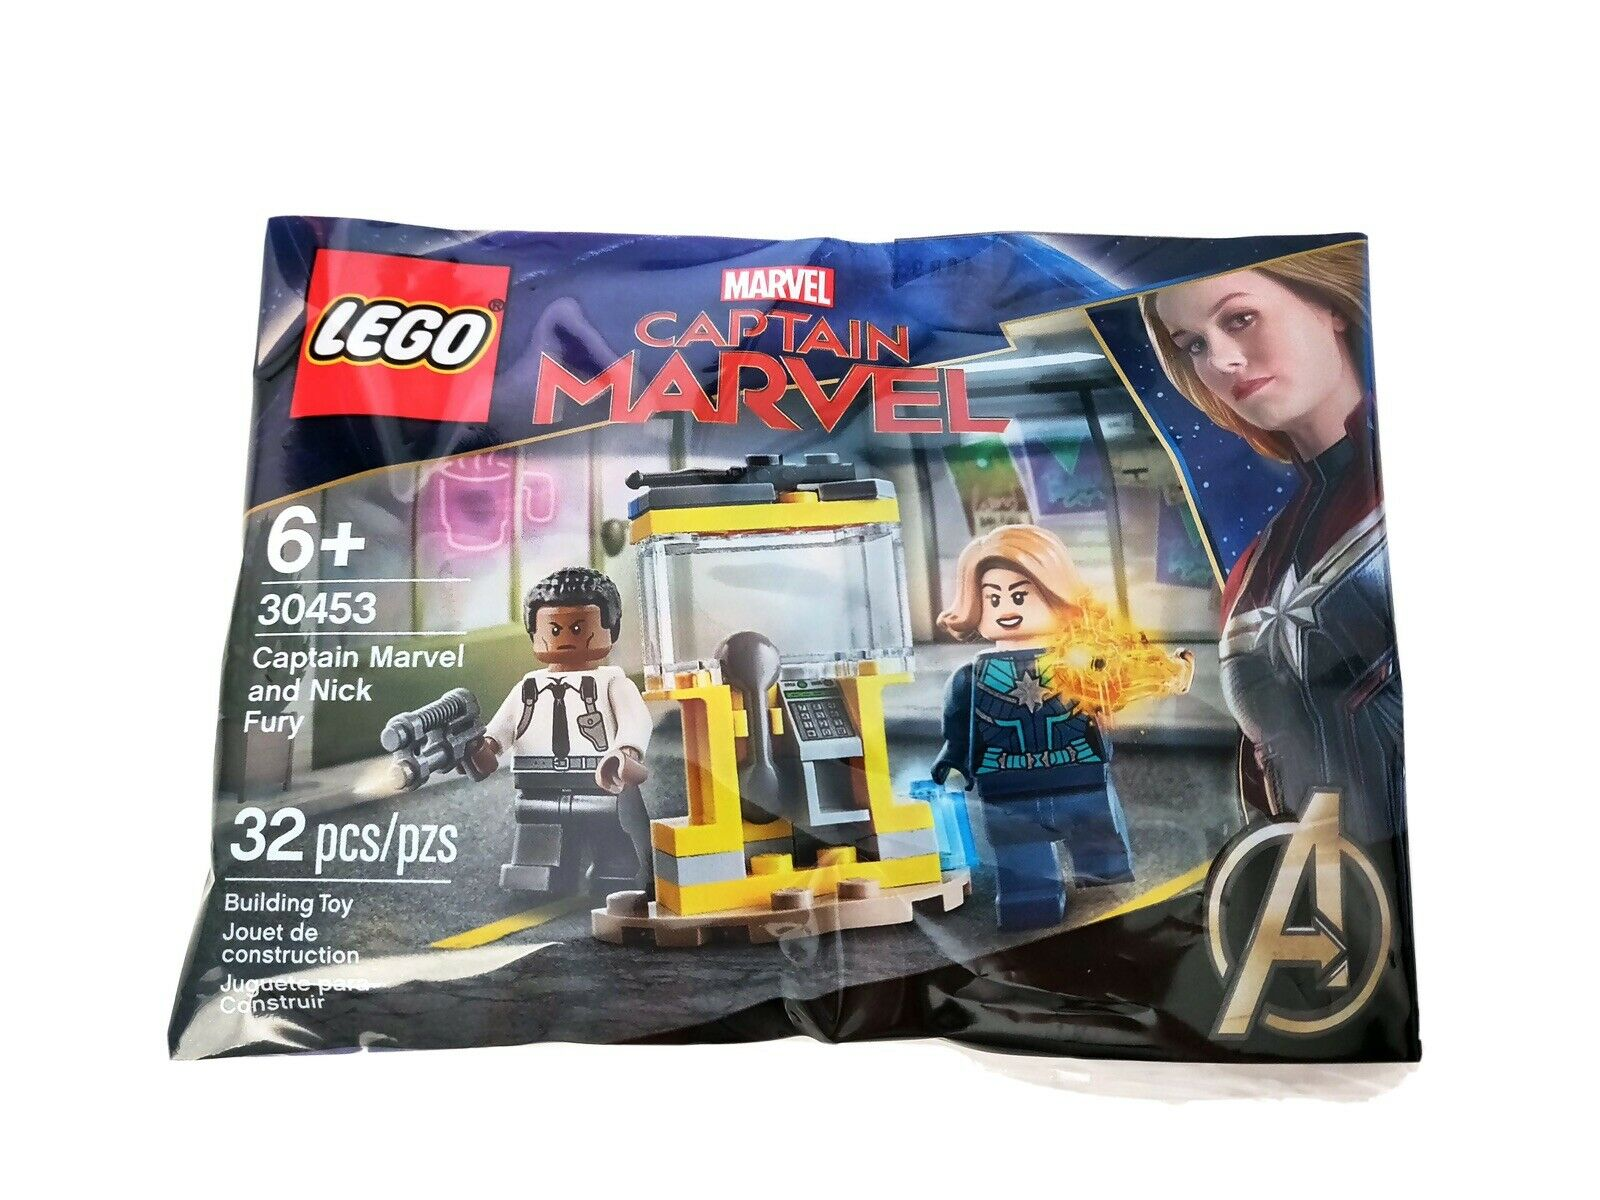 Minifigure Figurine New From 30453 Lego Super Heroes Captain Marvel sh605